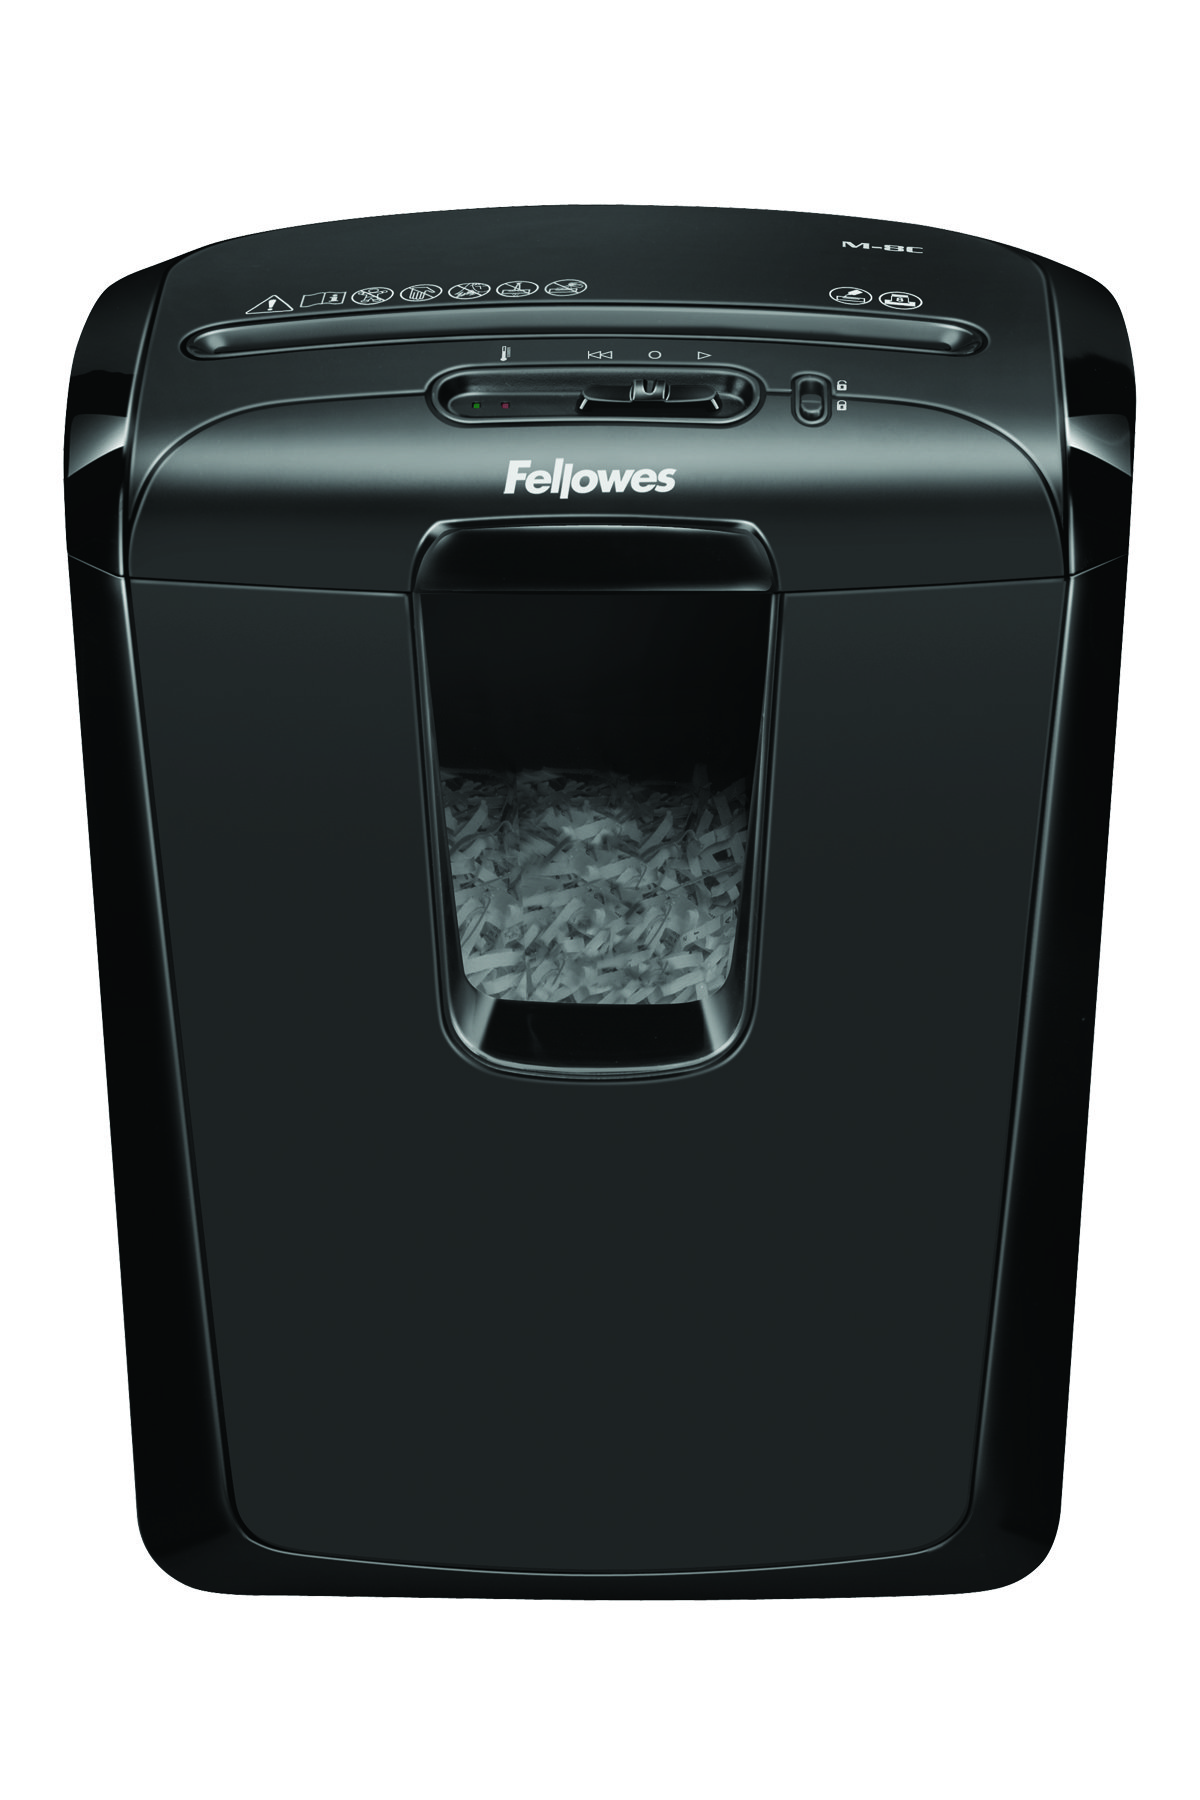 Destruidora de Papel Fellowes M-8C, 8fls, 15L